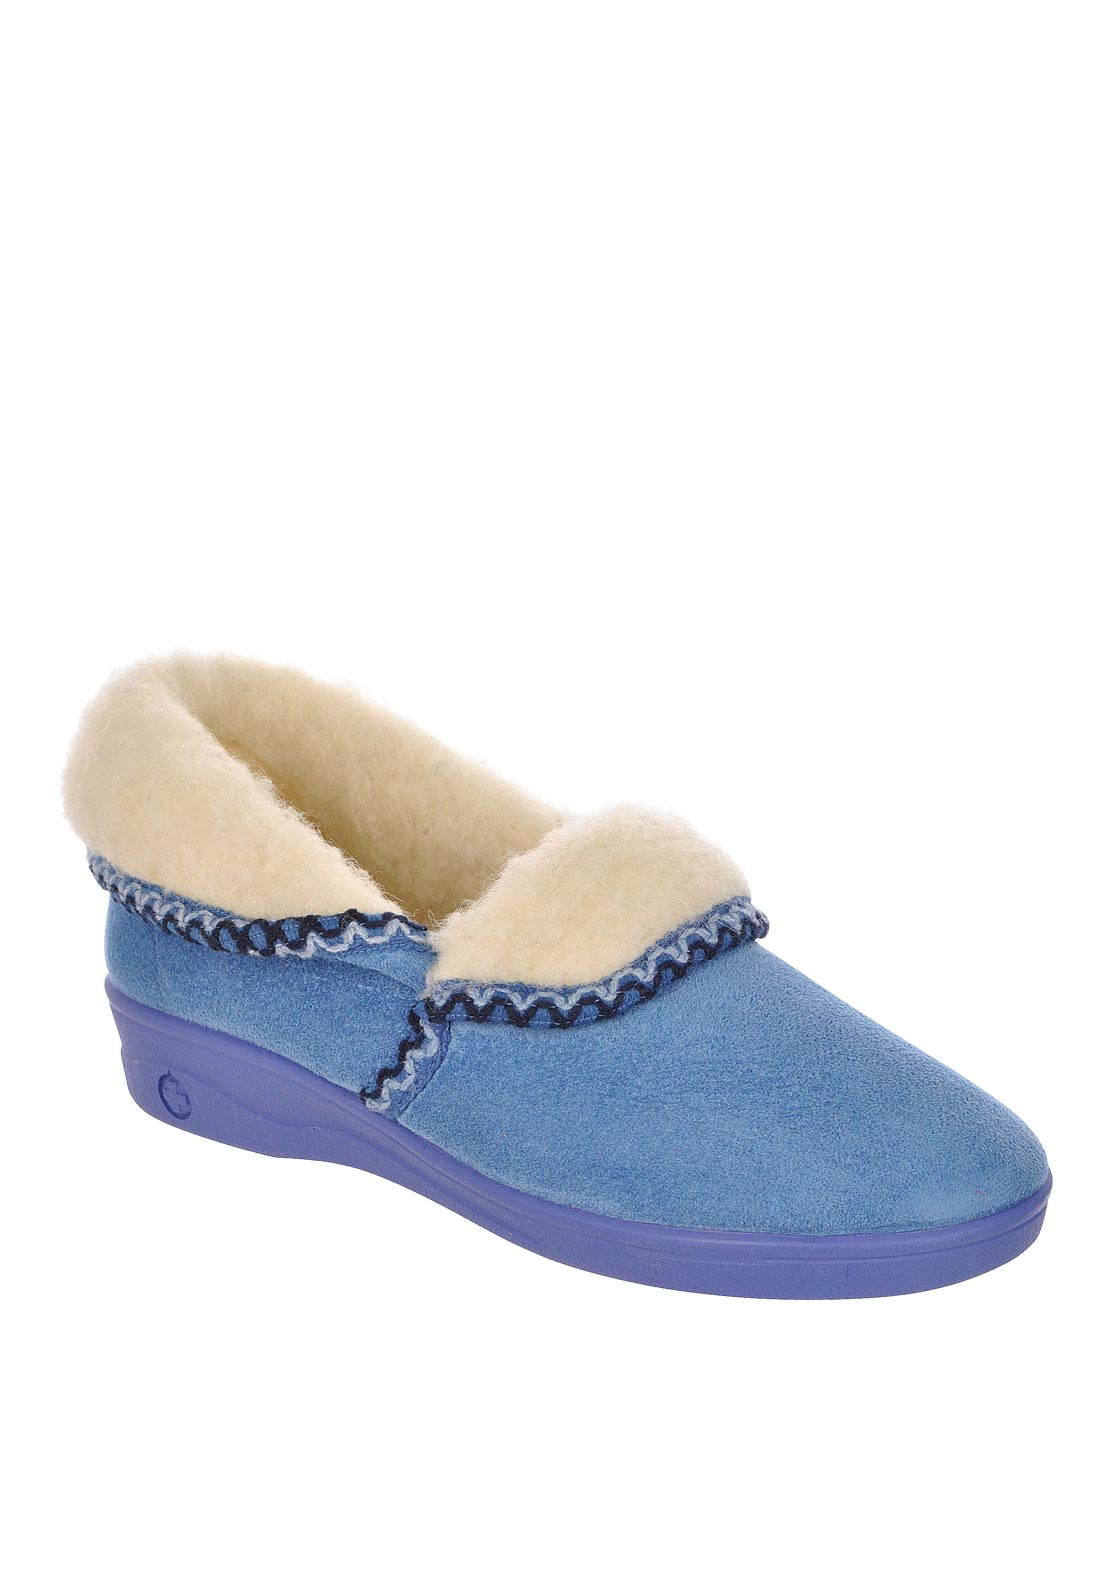 Lotus Womens Celia Sheep Skin Slippers, Blue